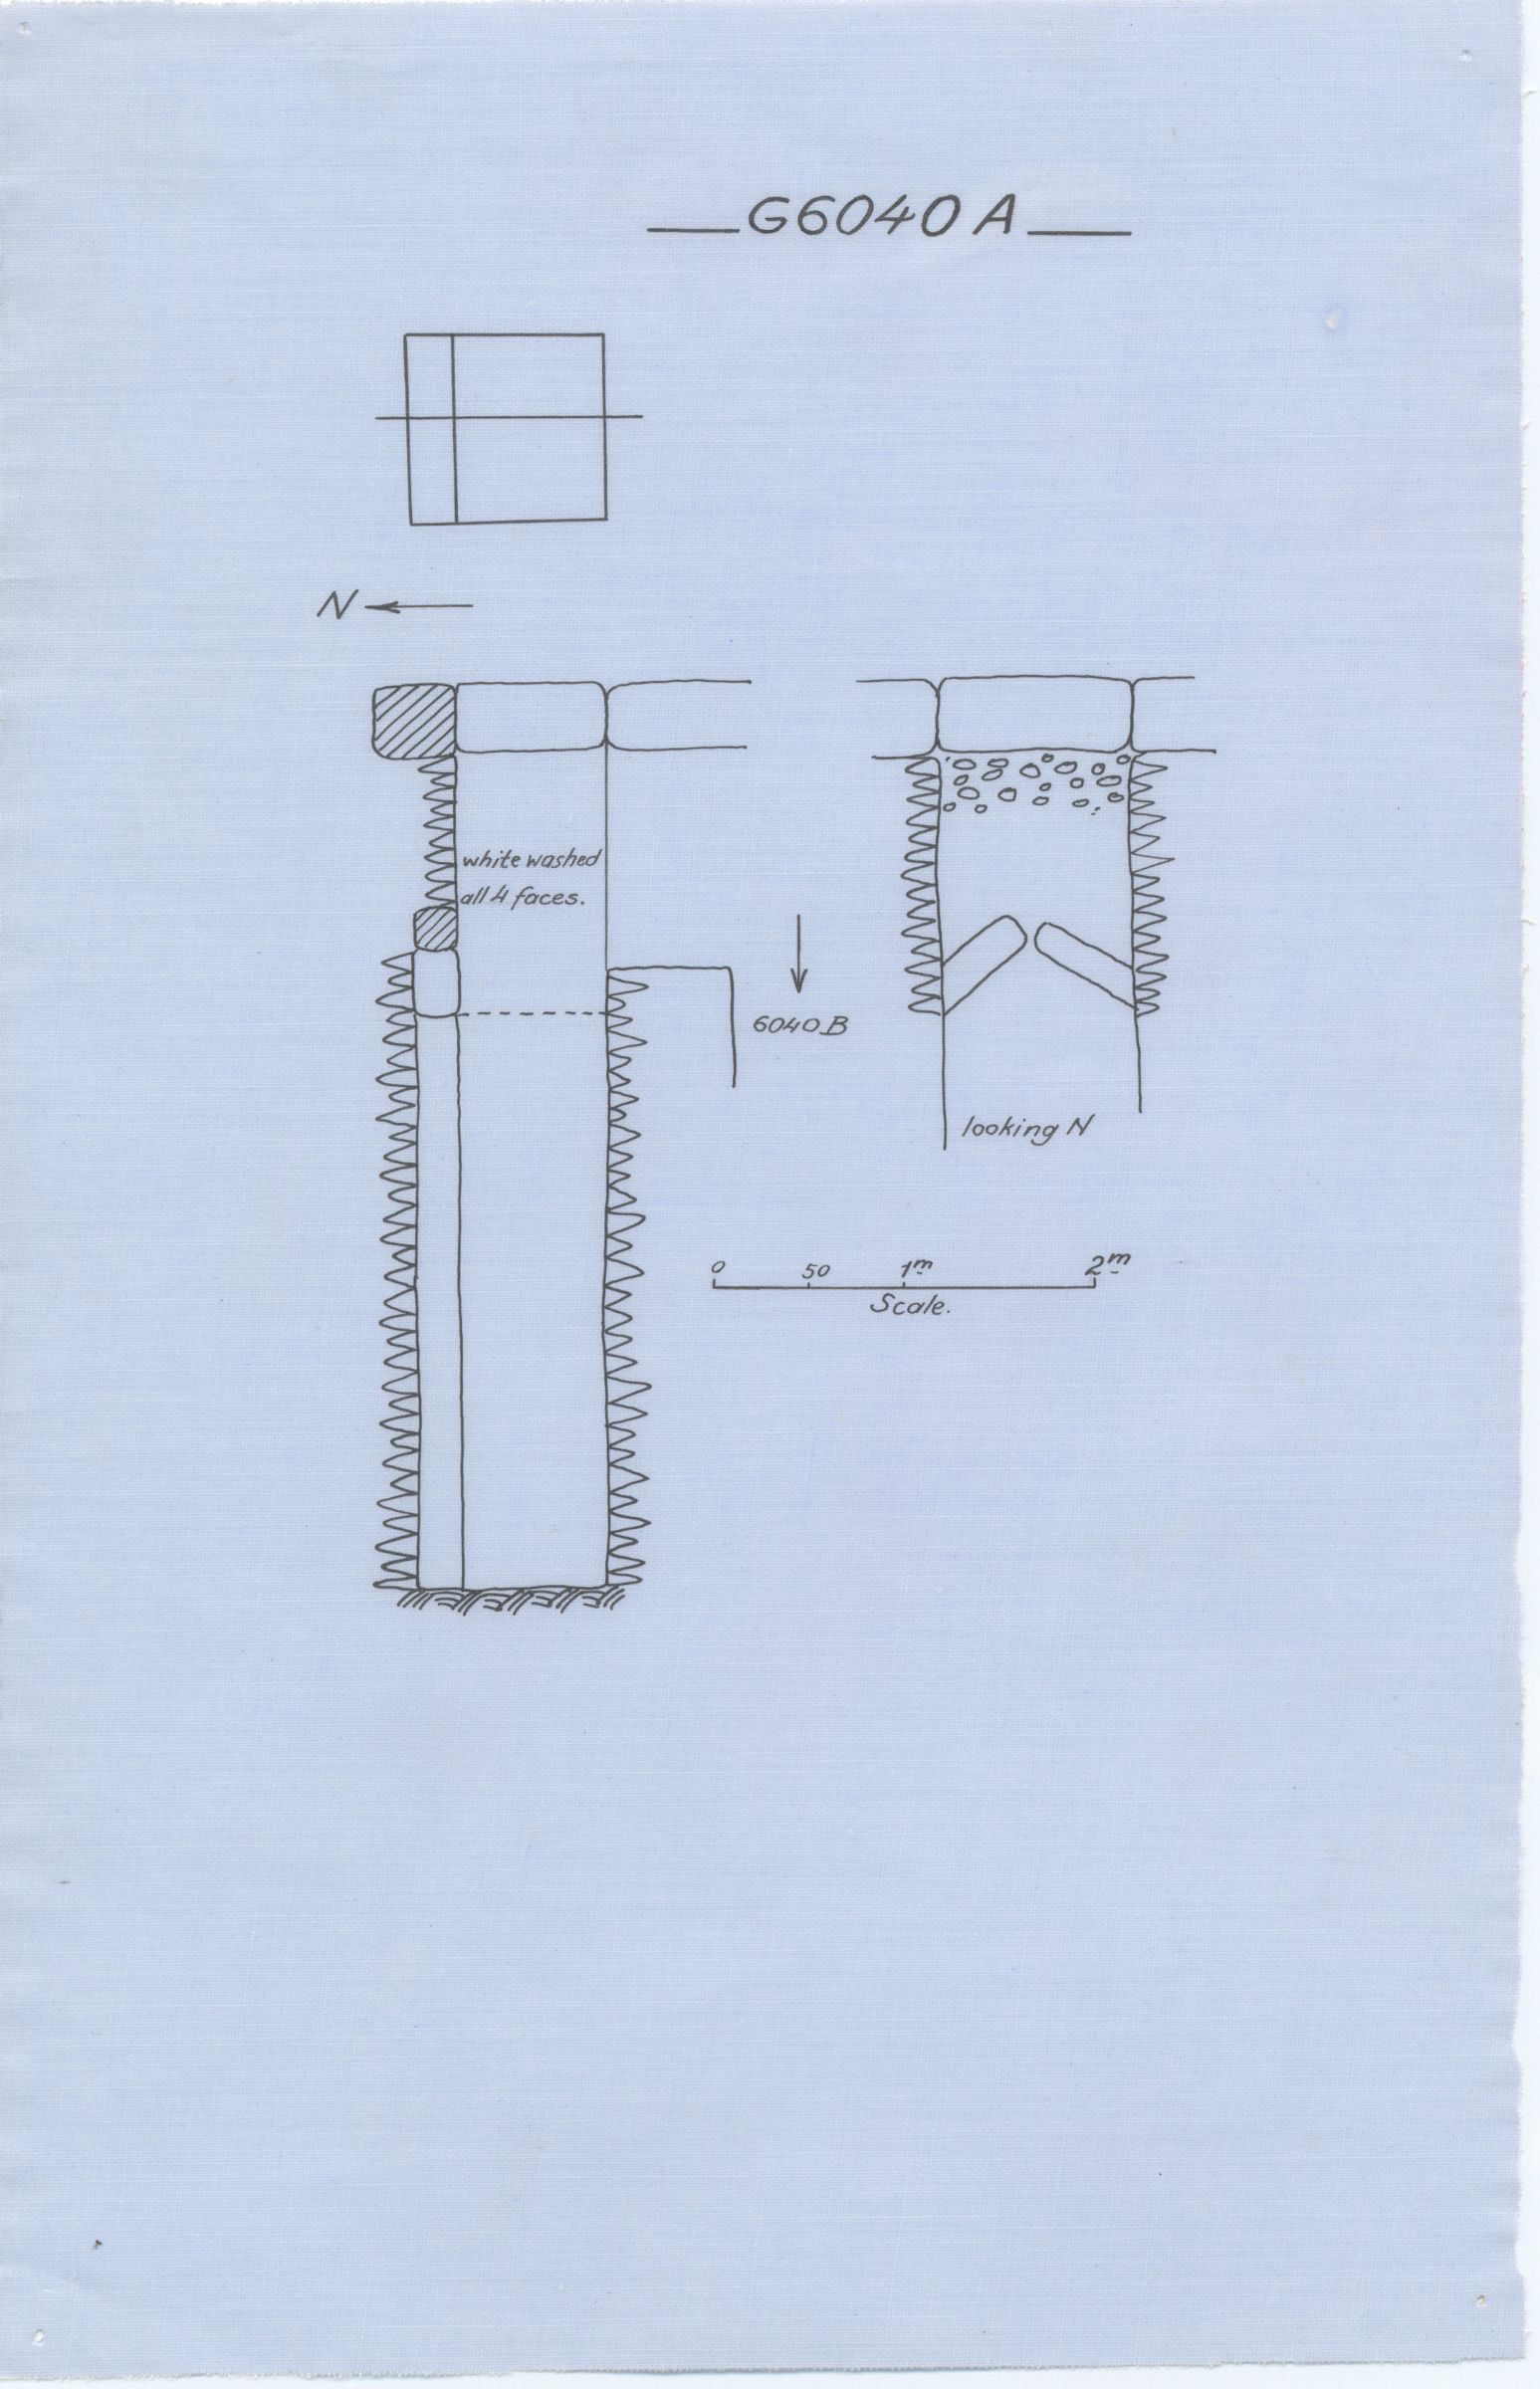 Maps and plans: G 6040, Shaft A